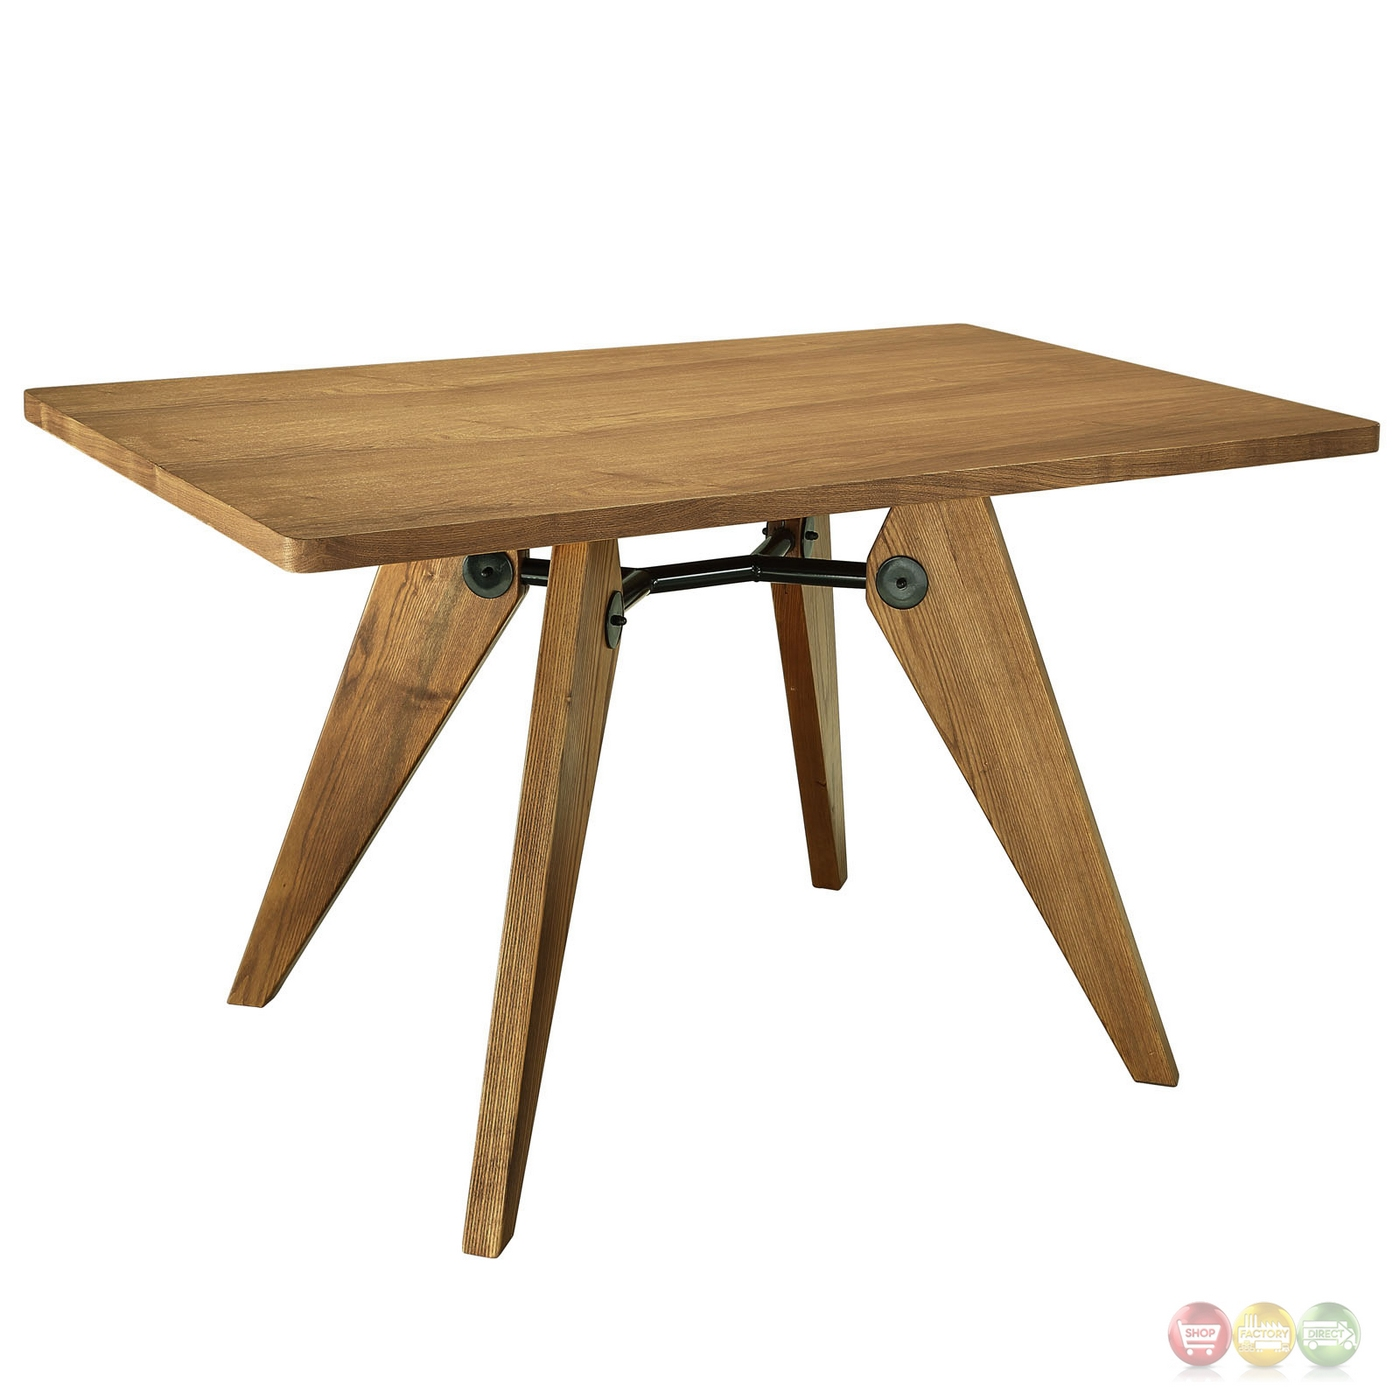 Landing 32 round dining table in natural wood finish w for Metal dining table